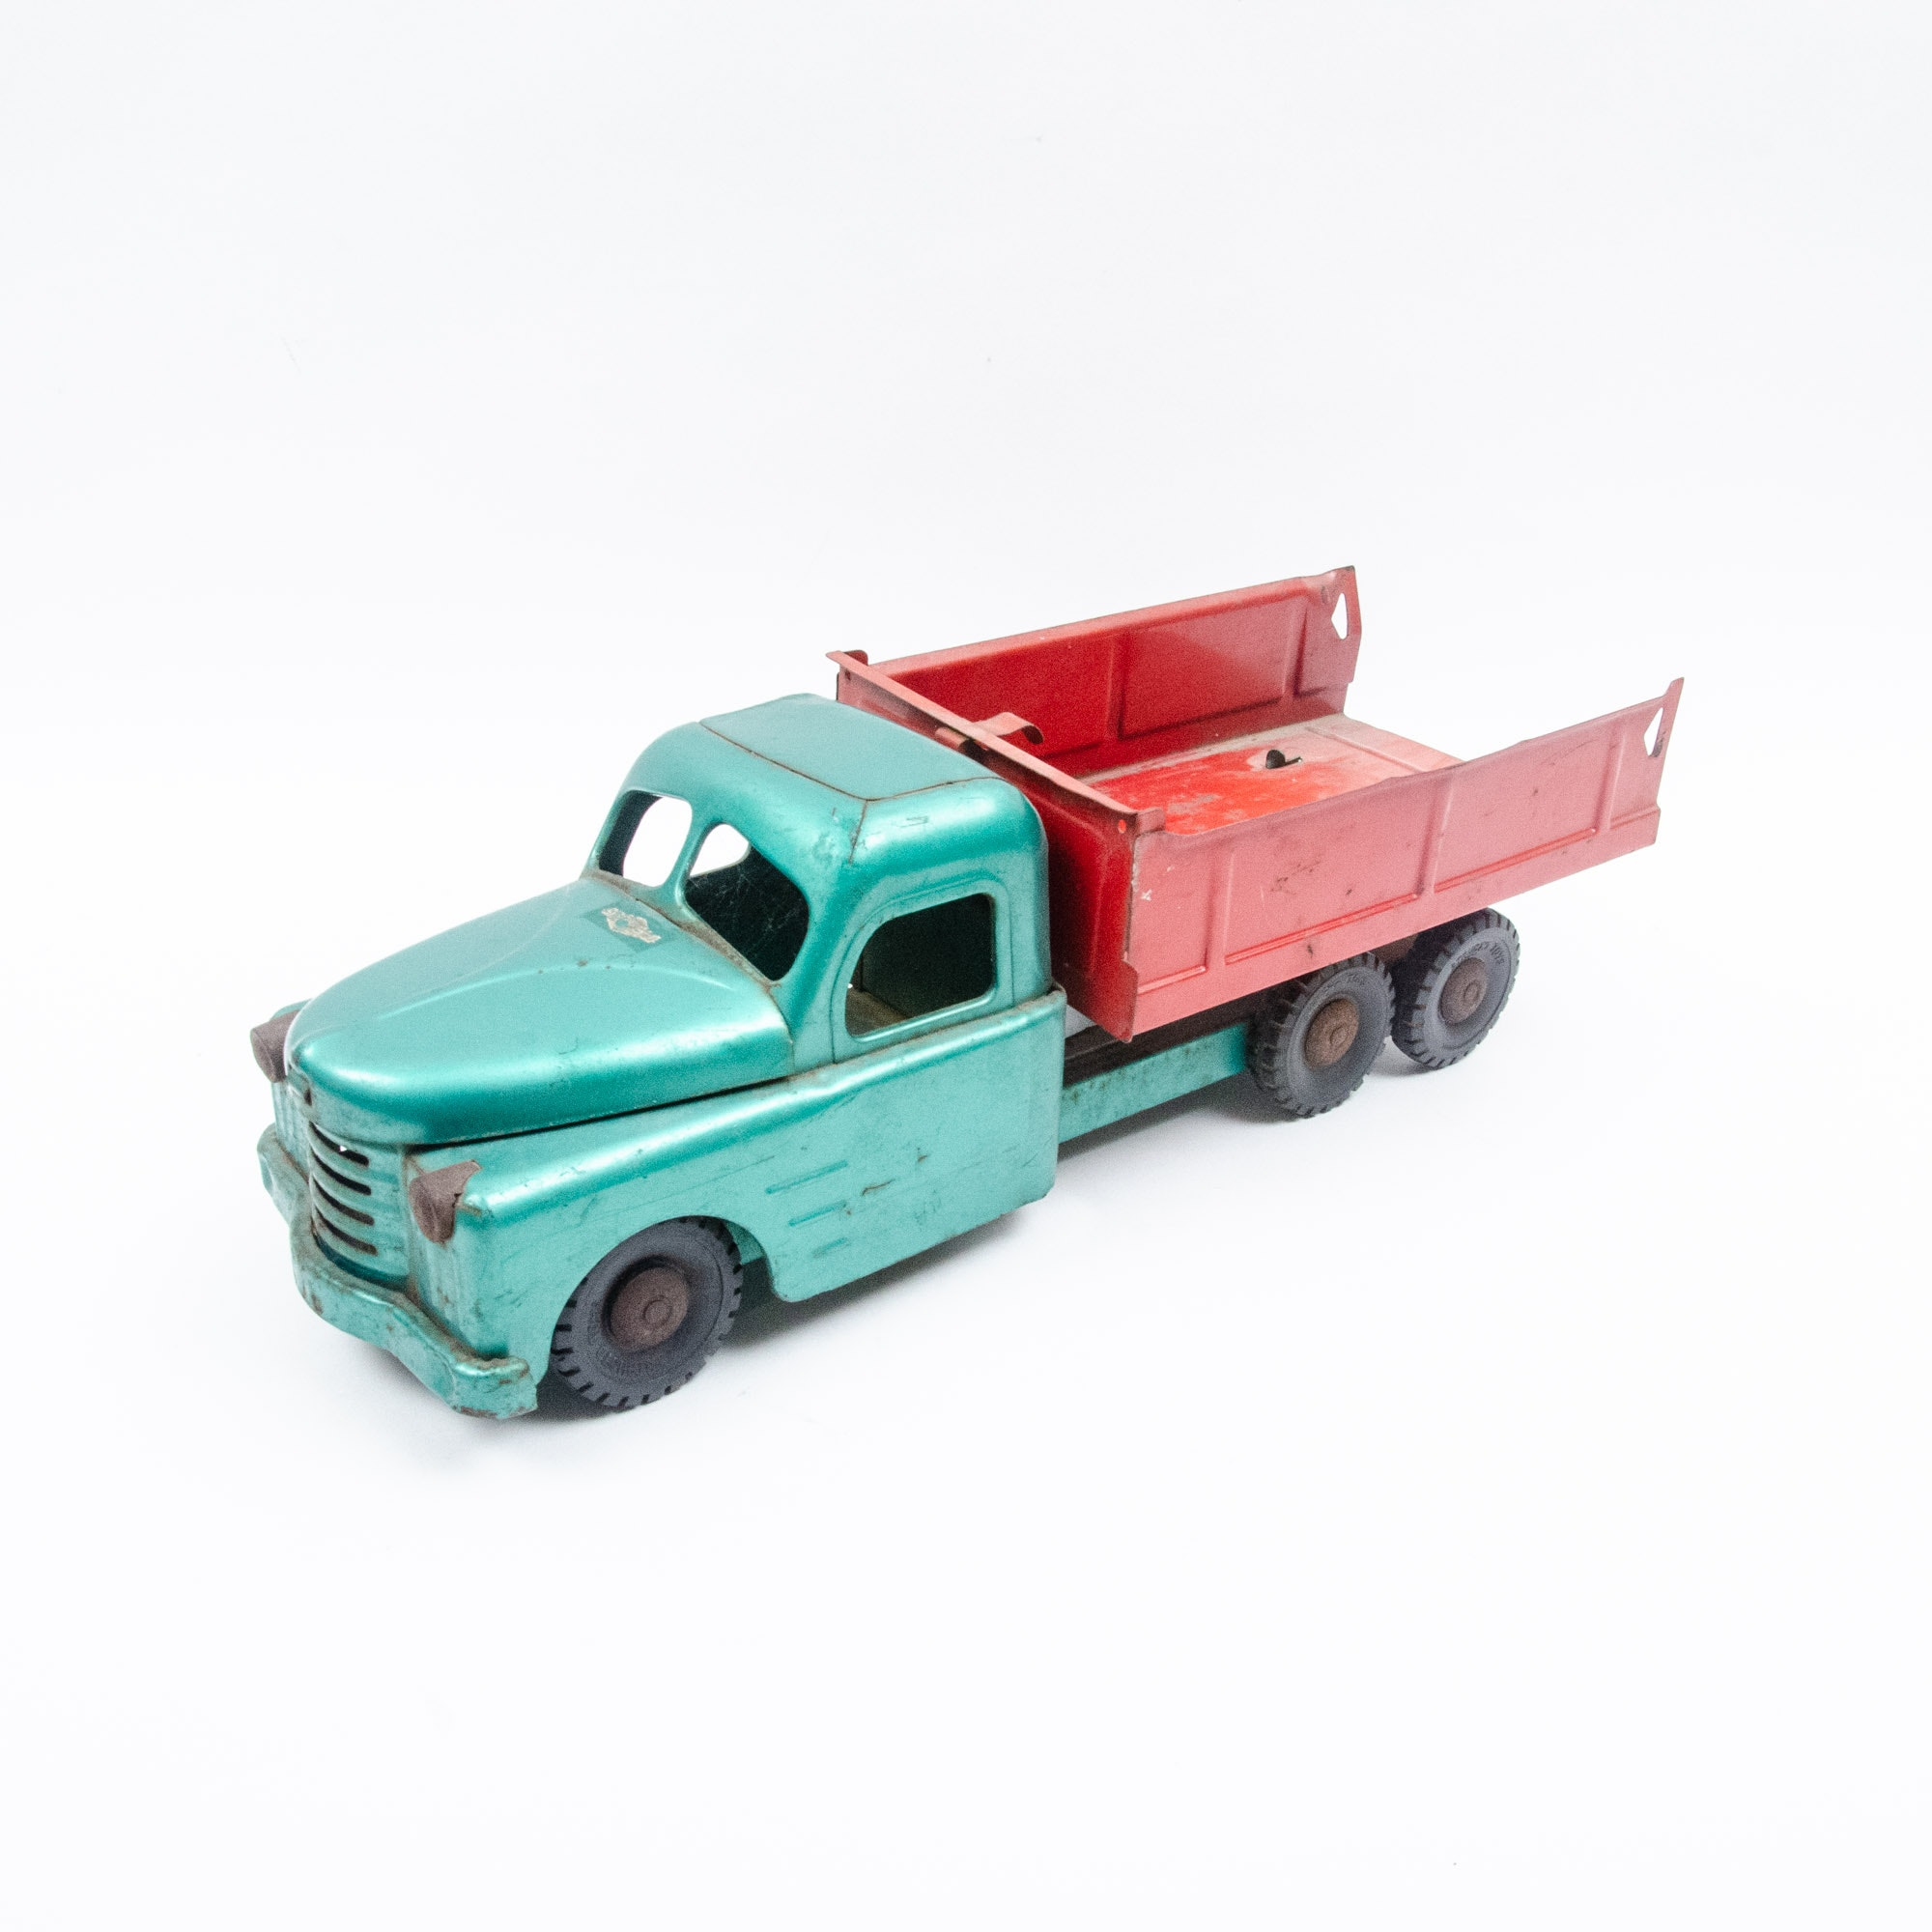 Structo Die Cast Pickup, Circa 1950s